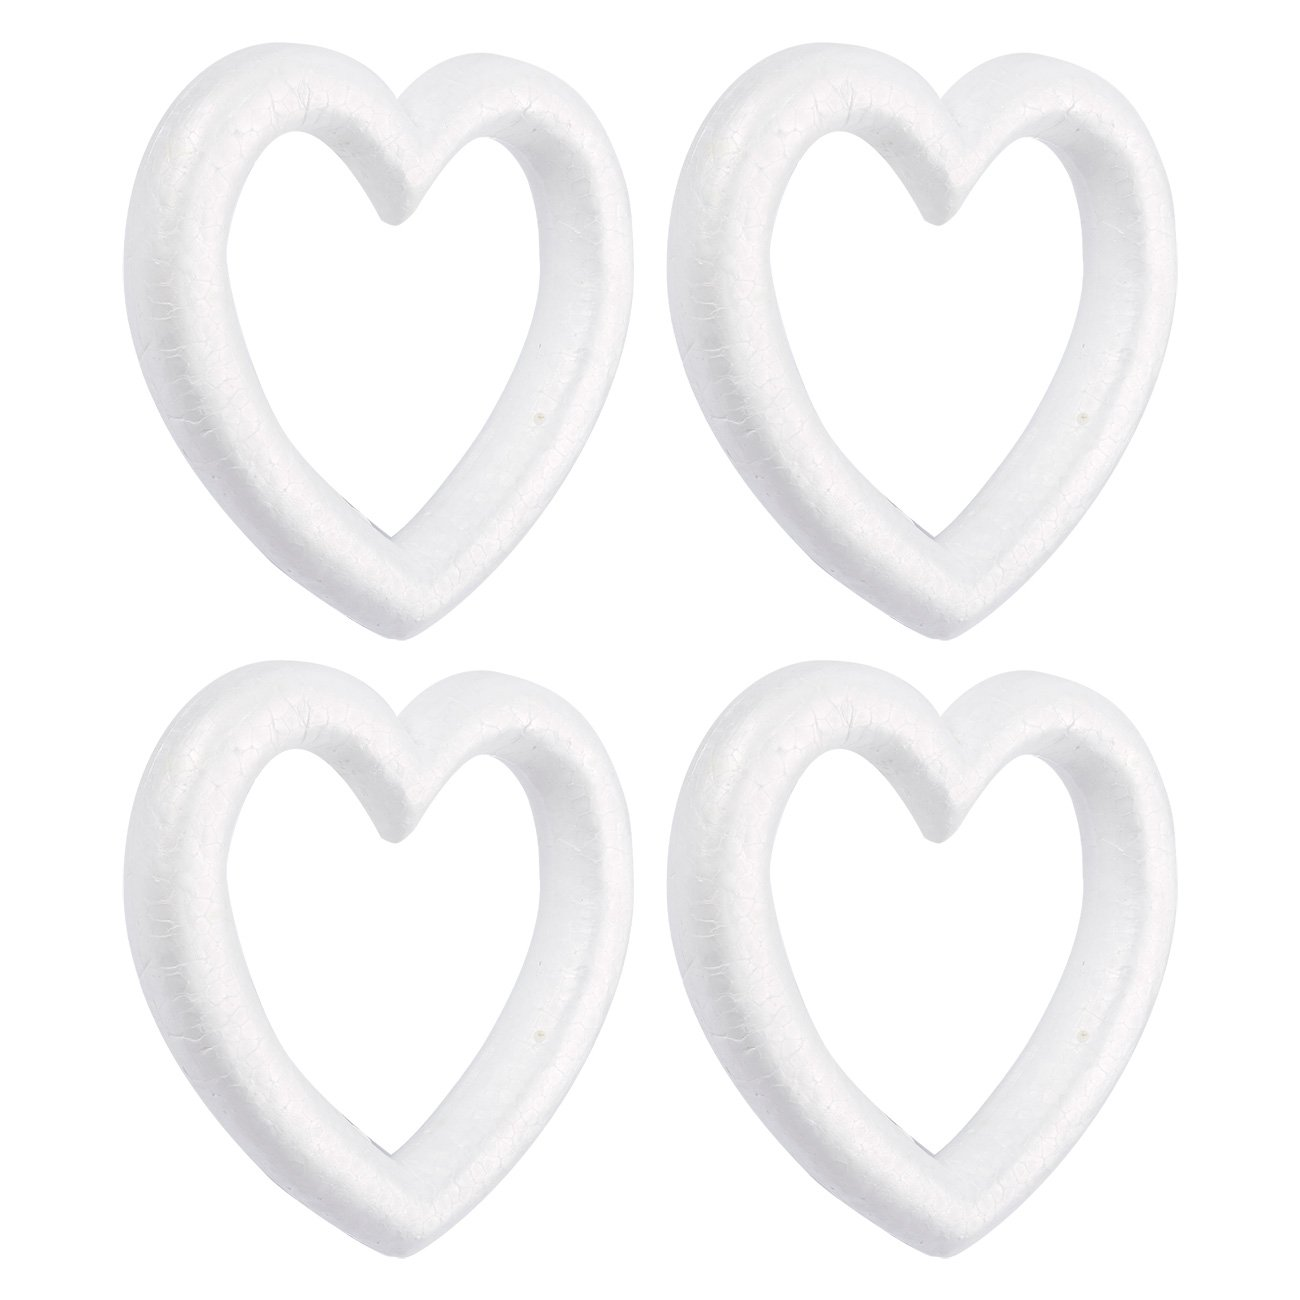 Juvale Heart Shaped Foam Wreath - 4-Pack Polystyrene Foam Wreath, Open Heart Shaped - Extruded Heart Foam Wreath, DIY Supplies Craft Projects Wedding Decorations - White, 9.84 x 1.89 x 9.84 inches by Juvale